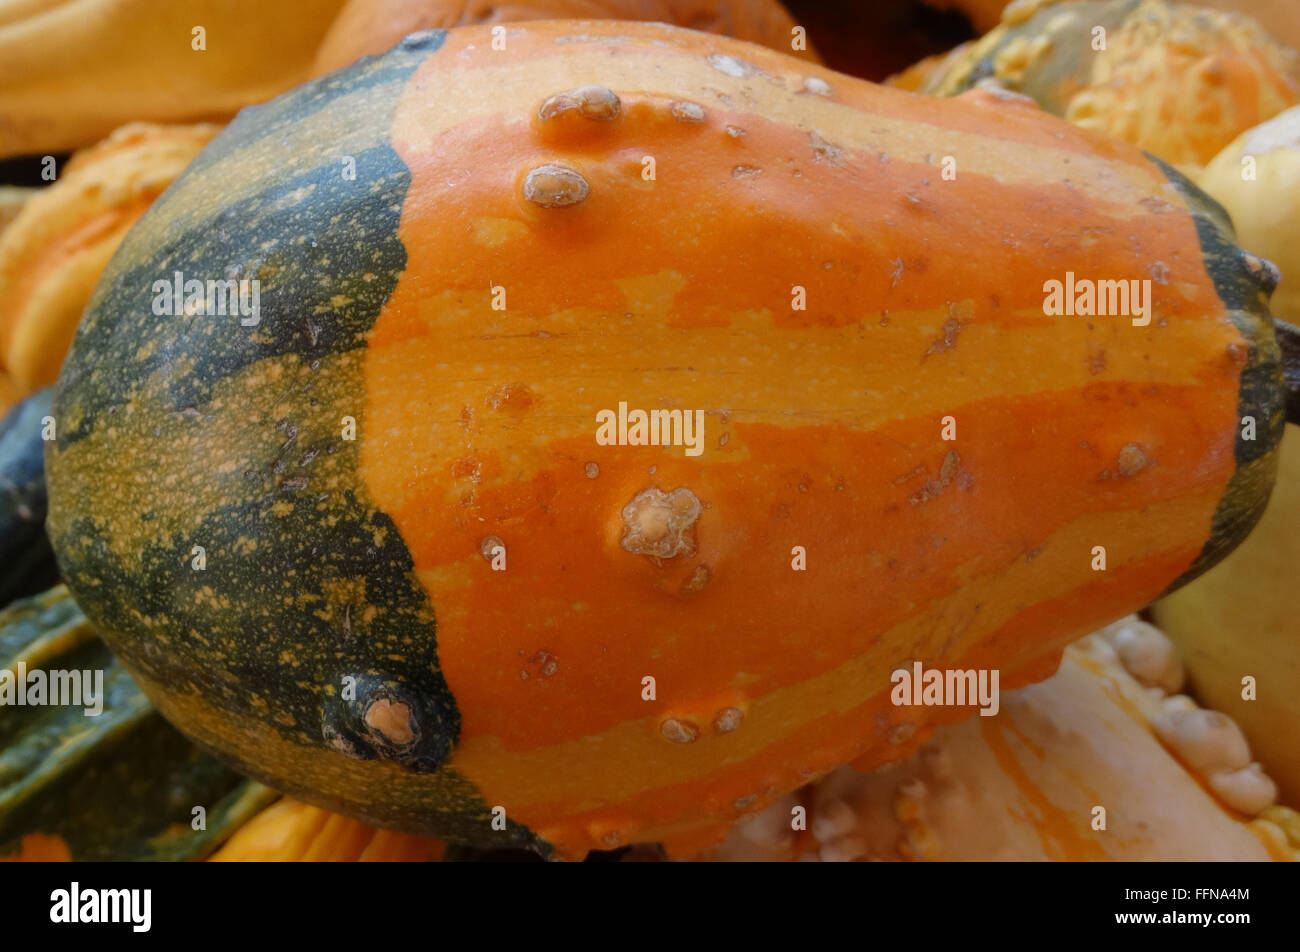 Cucurbita pepo, Warty bicolored pear gourd, ornamental gourd, bicolored with warts, lowers portion green uper orange Stock Photo